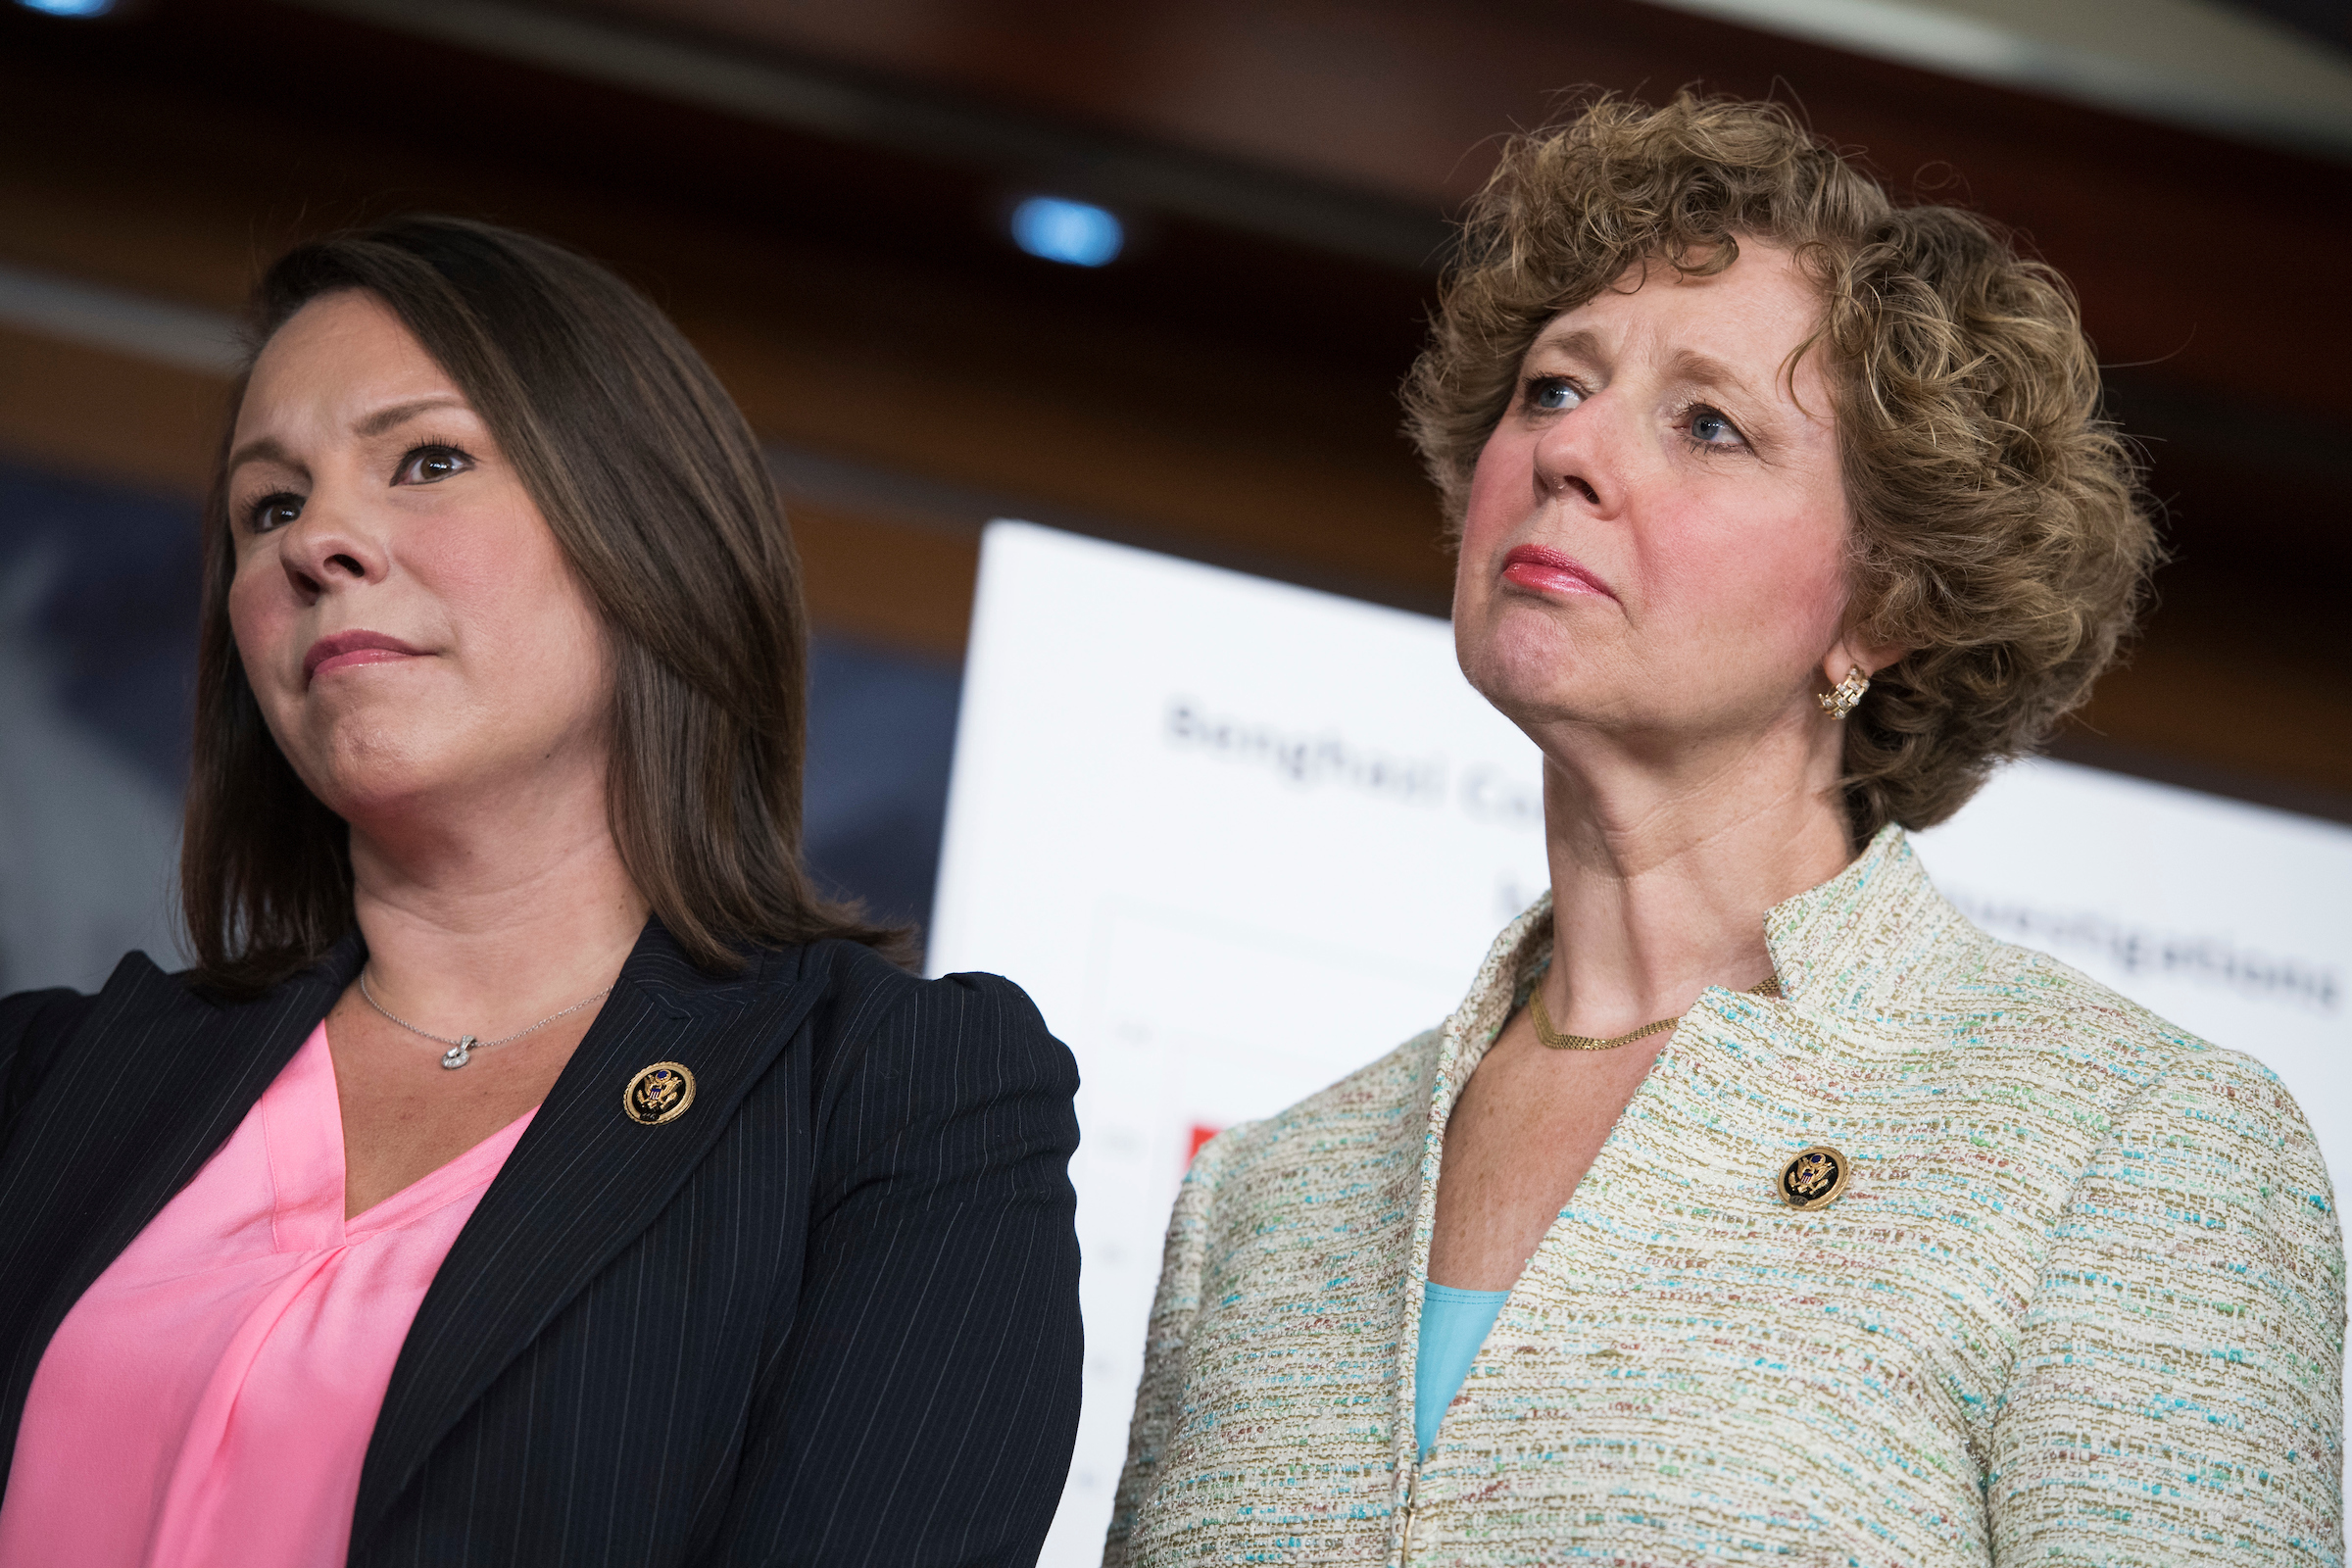 "Reps. <a class=""memberLink"" title=""Click to view member info in a new window"" href=""http://data.rollcall.com/members/31387?rel=memberLink"" target=""_blank"">Martha Roby</a> of Alabama, left, and <a class=""memberLink"" title=""Click to view member info in a new window"" href=""http://data.rollcall.com/members/44650?rel=memberLink"" target=""_blank"">Susan W. Brooks</a> of Indiana are considered potential candidates for Senate seats in their respective states. (Tom Williams/CQ Roll Call File Photo)"